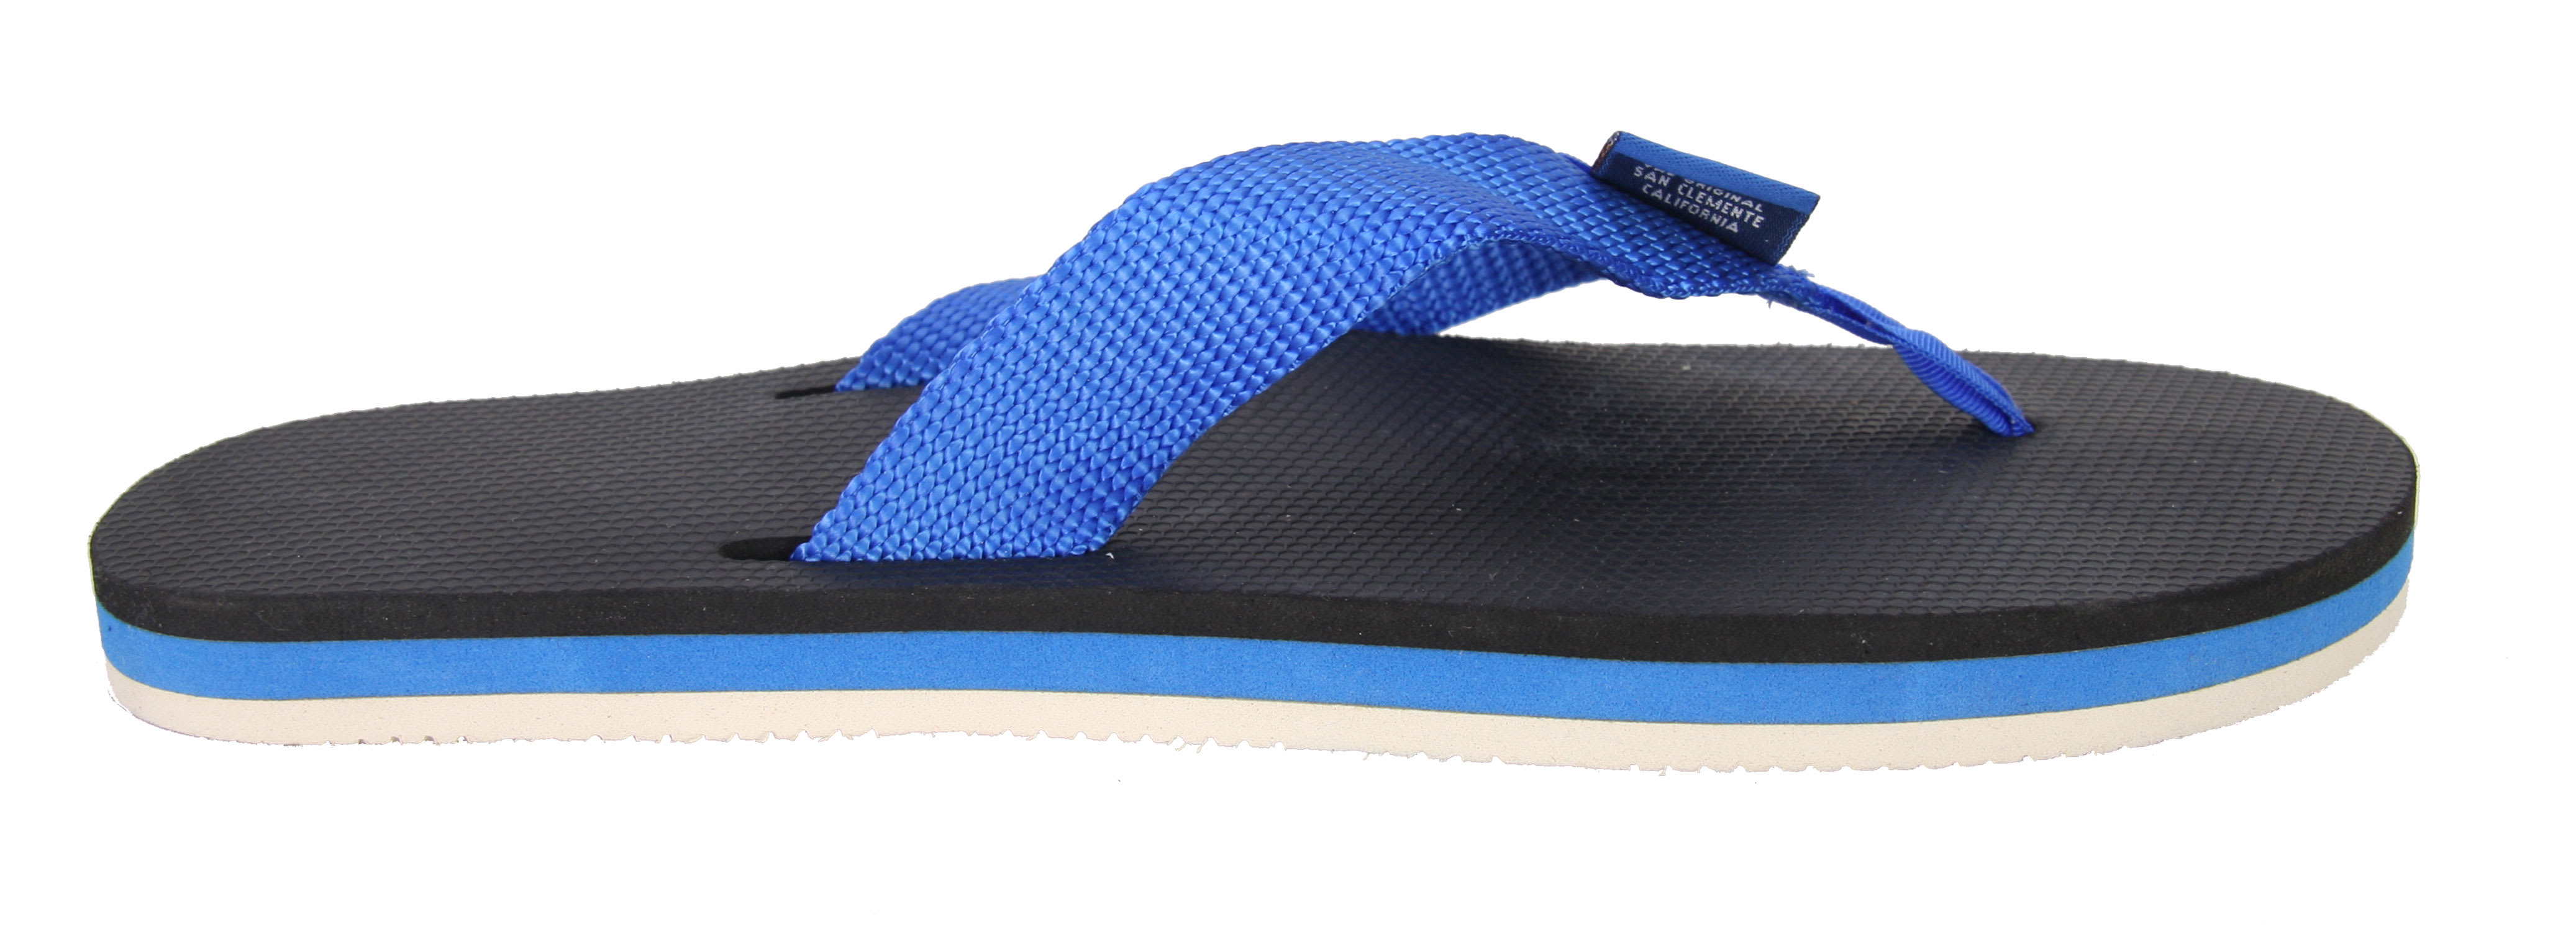 Shop for Rainbow Classic Sandals Blue St/White So - Women's